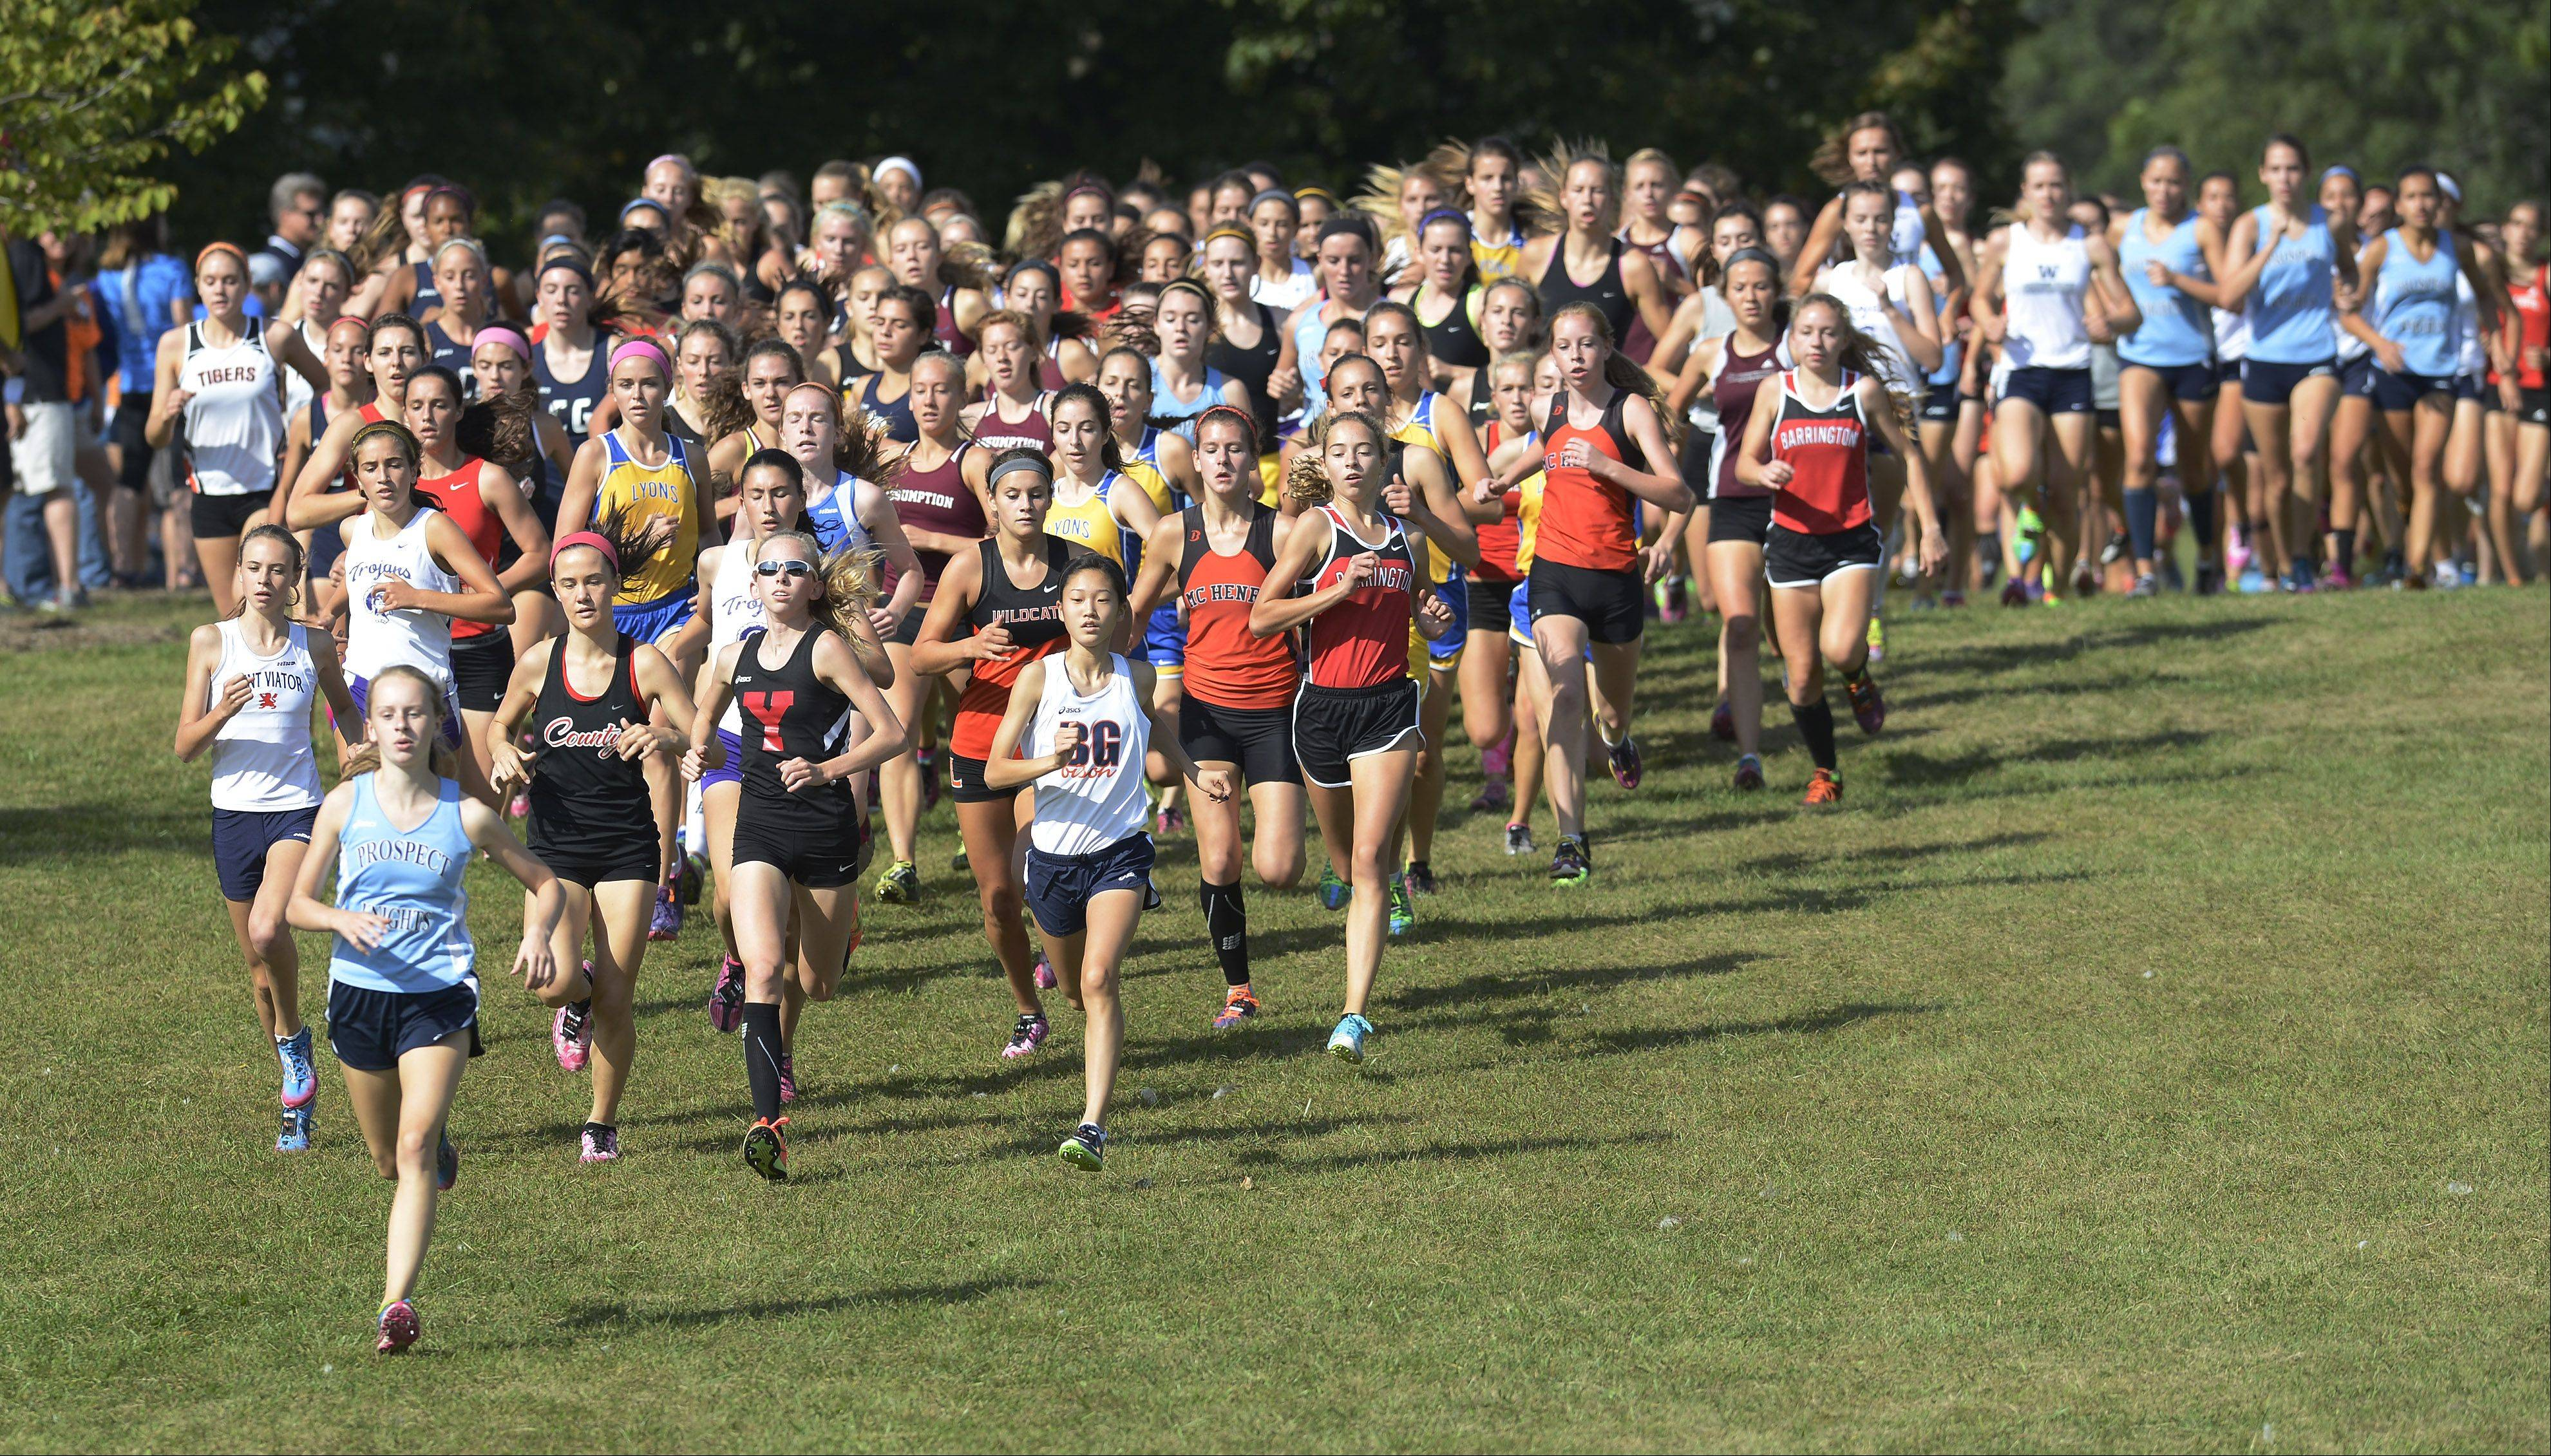 Runners descend a hill just after the start of the girls varsity race during the Palatine Invitational at Deer Grove East on Saturday.